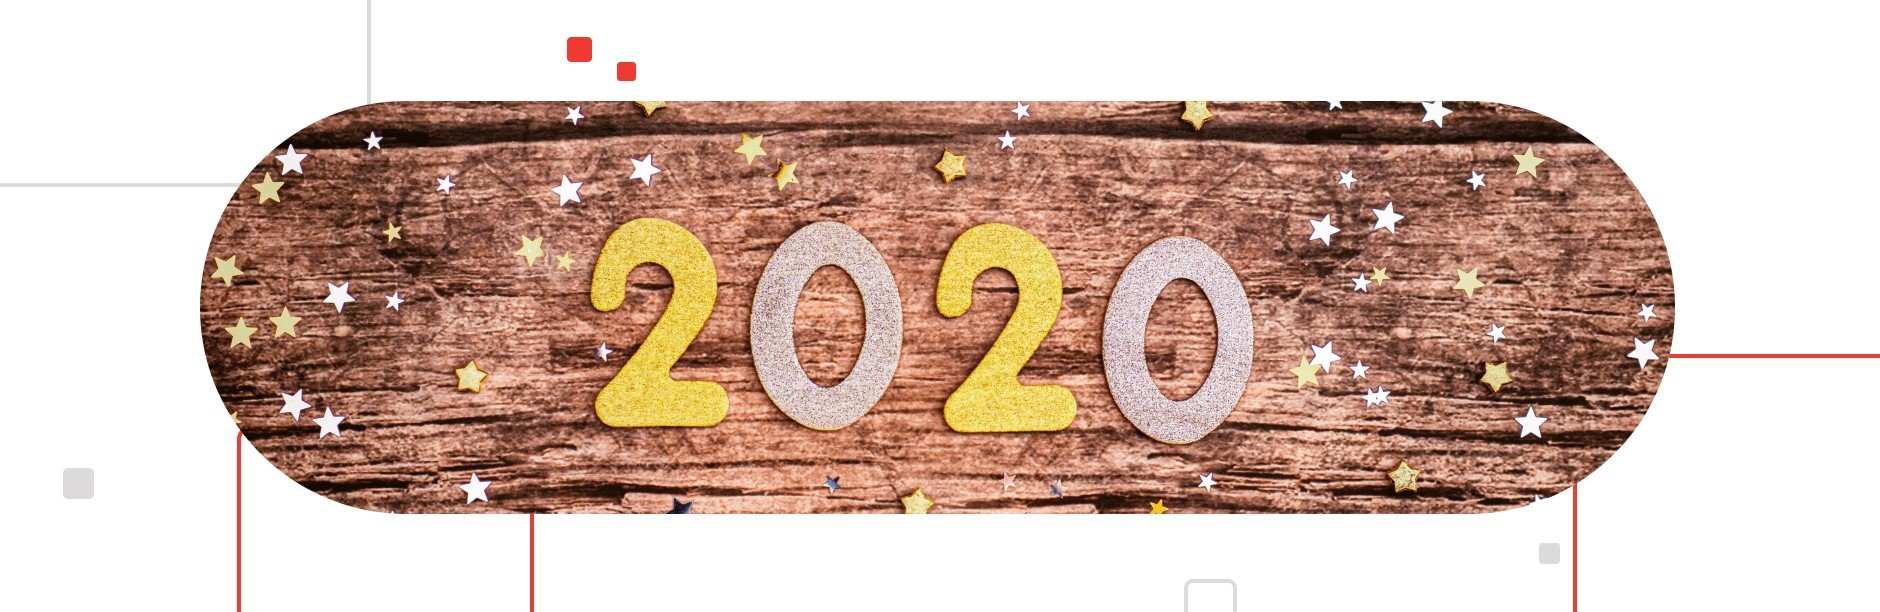 Top 8 Technology Trends for 2020 and Beyond